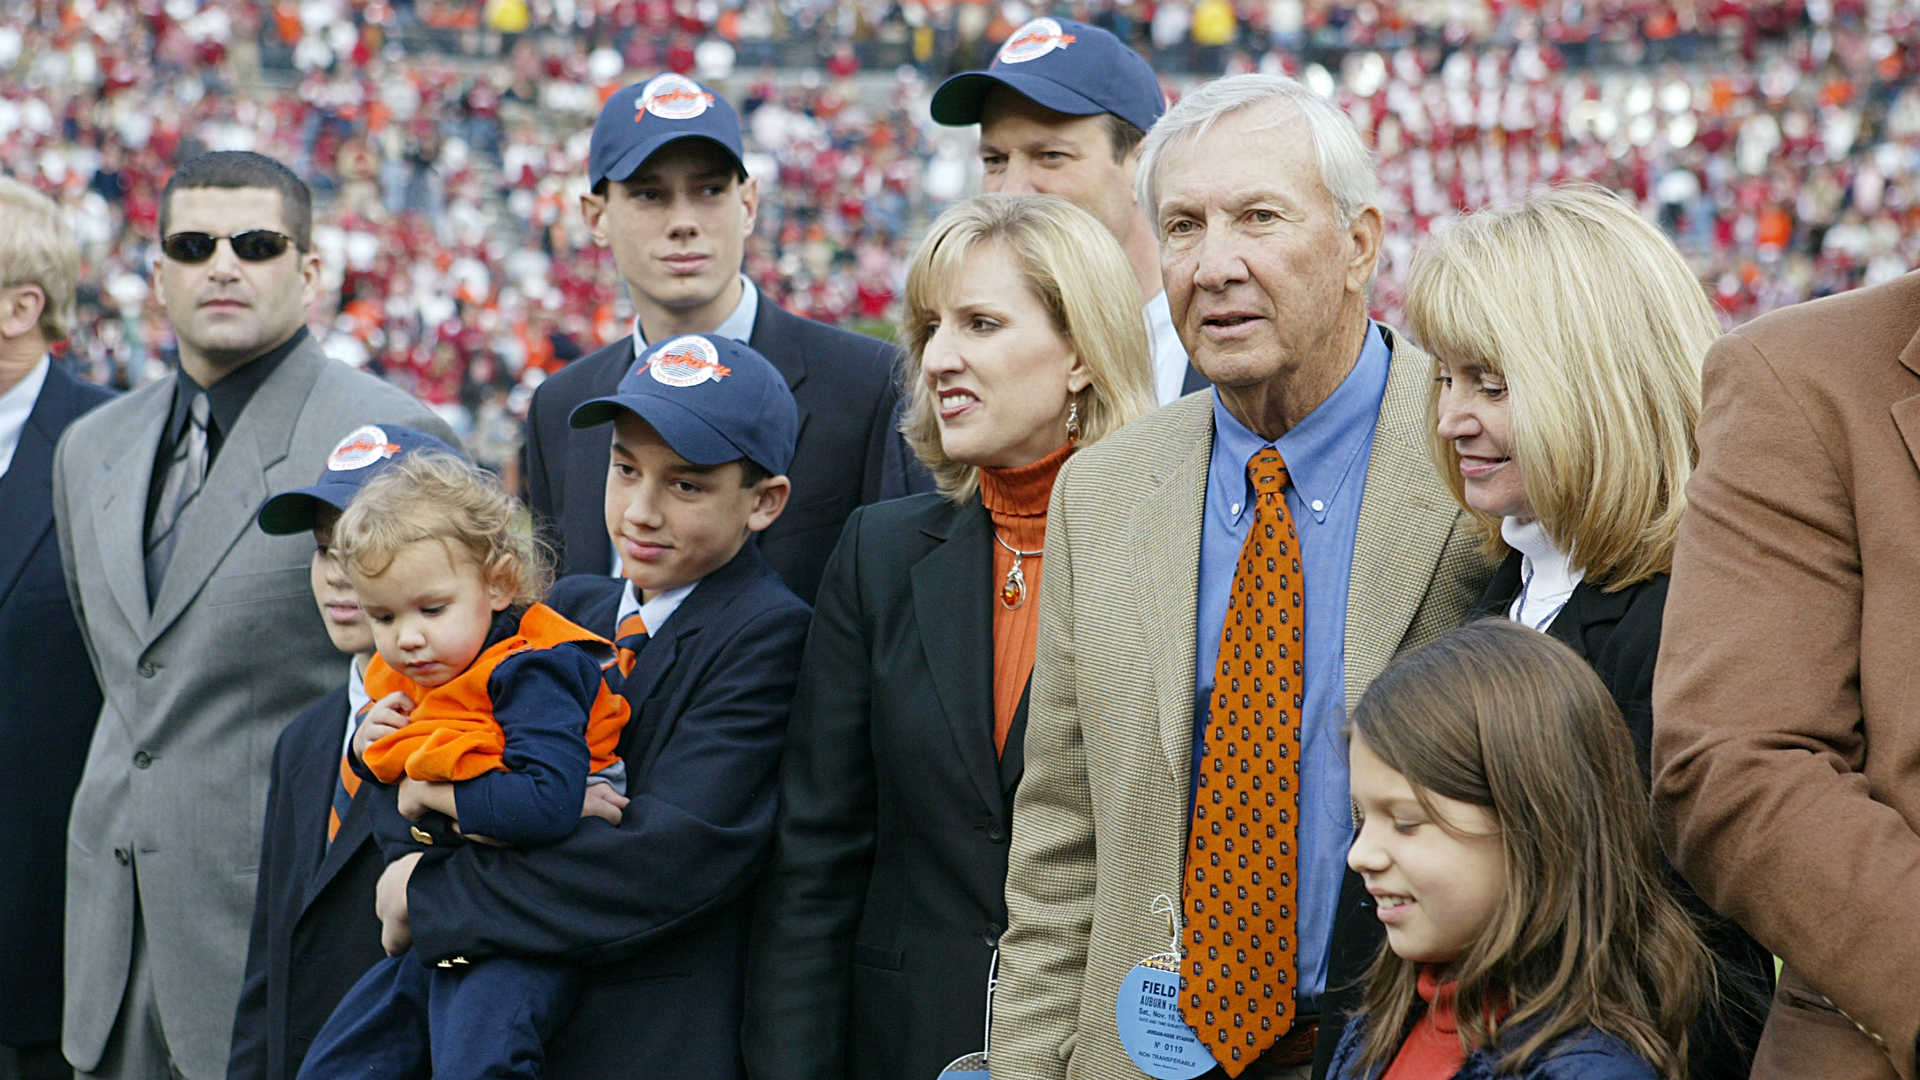 Late Auburn coach Pat Dye brought balance to Iron Bowl that still remains - sporting news